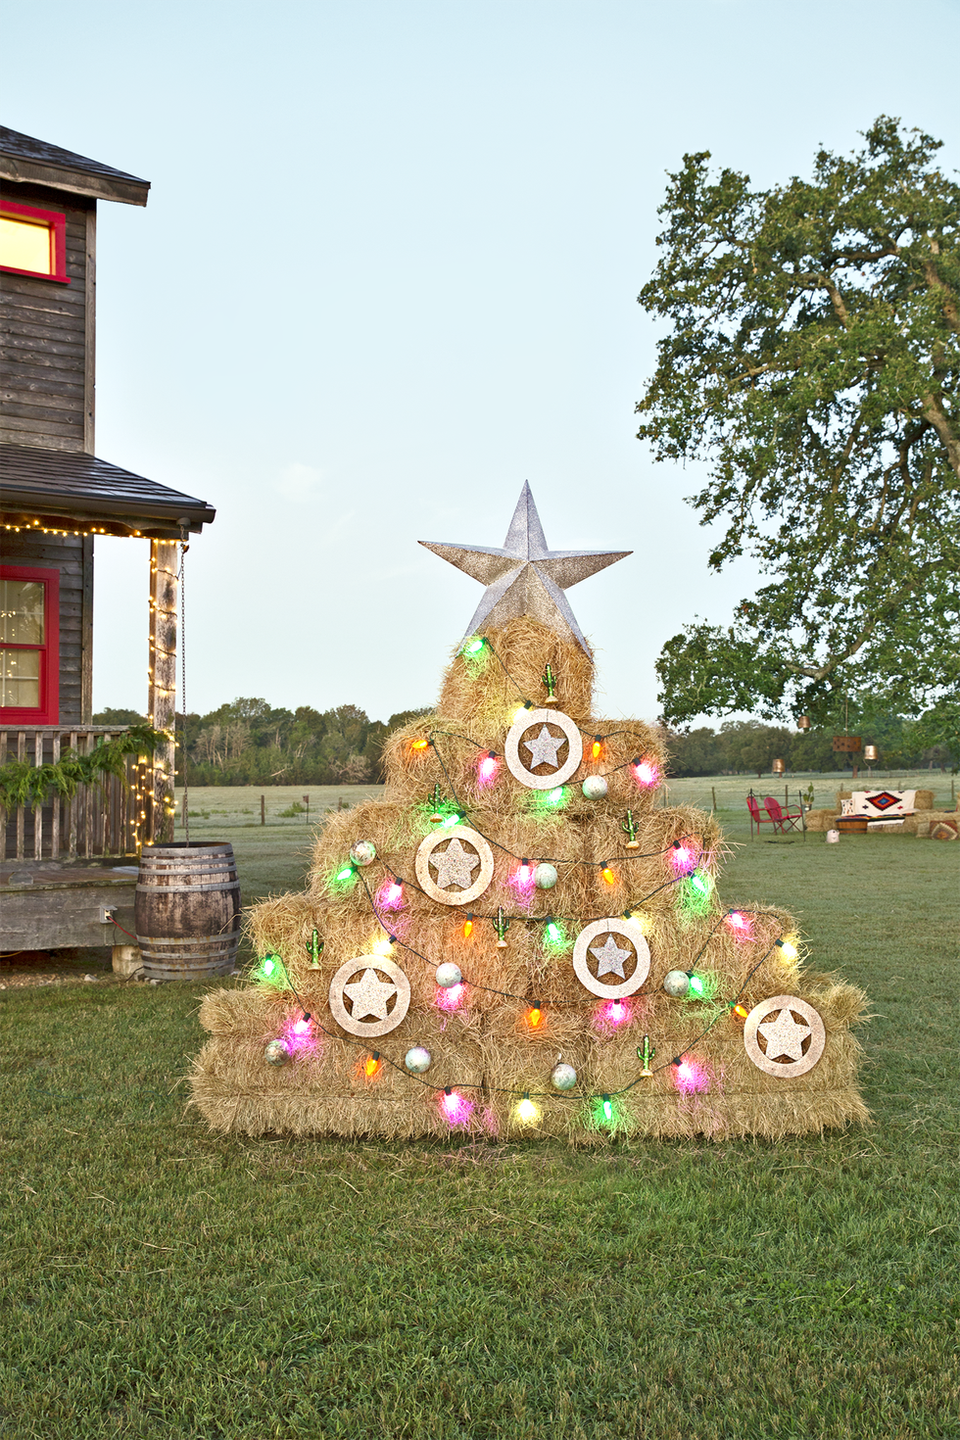 "<p>Live on a farm or happen to have a big backyard? Ditch a traditional tree for one made of hay bales. You can't get more unique than this!</p><p>See more at <a href=""https://www.diybunker.com/diy-outdoor-christmas-decorations/"" rel=""nofollow noopener"" target=""_blank"" data-ylk=""slk:DIY Bunker"" class=""link rapid-noclick-resp"">DIY Bunker</a>.</p><p><a class=""link rapid-noclick-resp"" href=""https://www.amazon.com/Multi-Color-Incandescent-Connectable-Commercial-Multicolor/dp/B083593CH9/ref=sr_1_4_sspa?dchild=1&keywords=christmas+lights+colors&qid=1597241891&sr=8-4-spons&psc=1&spLa=ZW5jcnlwdGVkUXVhbGlmaWVyPUExUFQwT0xRWjdDSEFHJmVuY3J5cHRlZElkPUEwMTc5NjI2MUdBT0NWMUxWQzJDTiZlbmNyeXB0ZWRBZElkPUEwMzY1MTQ2UEdaVTRDSjFSVzEyJndpZGdldE5hbWU9c3BfYXRmJmFjdGlvbj1jbGlja1JlZGlyZWN0JmRvTm90TG9nQ2xpY2s9dHJ1ZQ%3D%3D&tag=syn-yahoo-20&ascsubtag=%5Bartid%7C10057.g.505%5Bsrc%7Cyahoo-us"" rel=""nofollow noopener"" target=""_blank"" data-ylk=""slk:SHOP LIGHTS"">SHOP LIGHTS</a> <strong><em>Colorful Christmas Lights, $23</em></strong></p>"